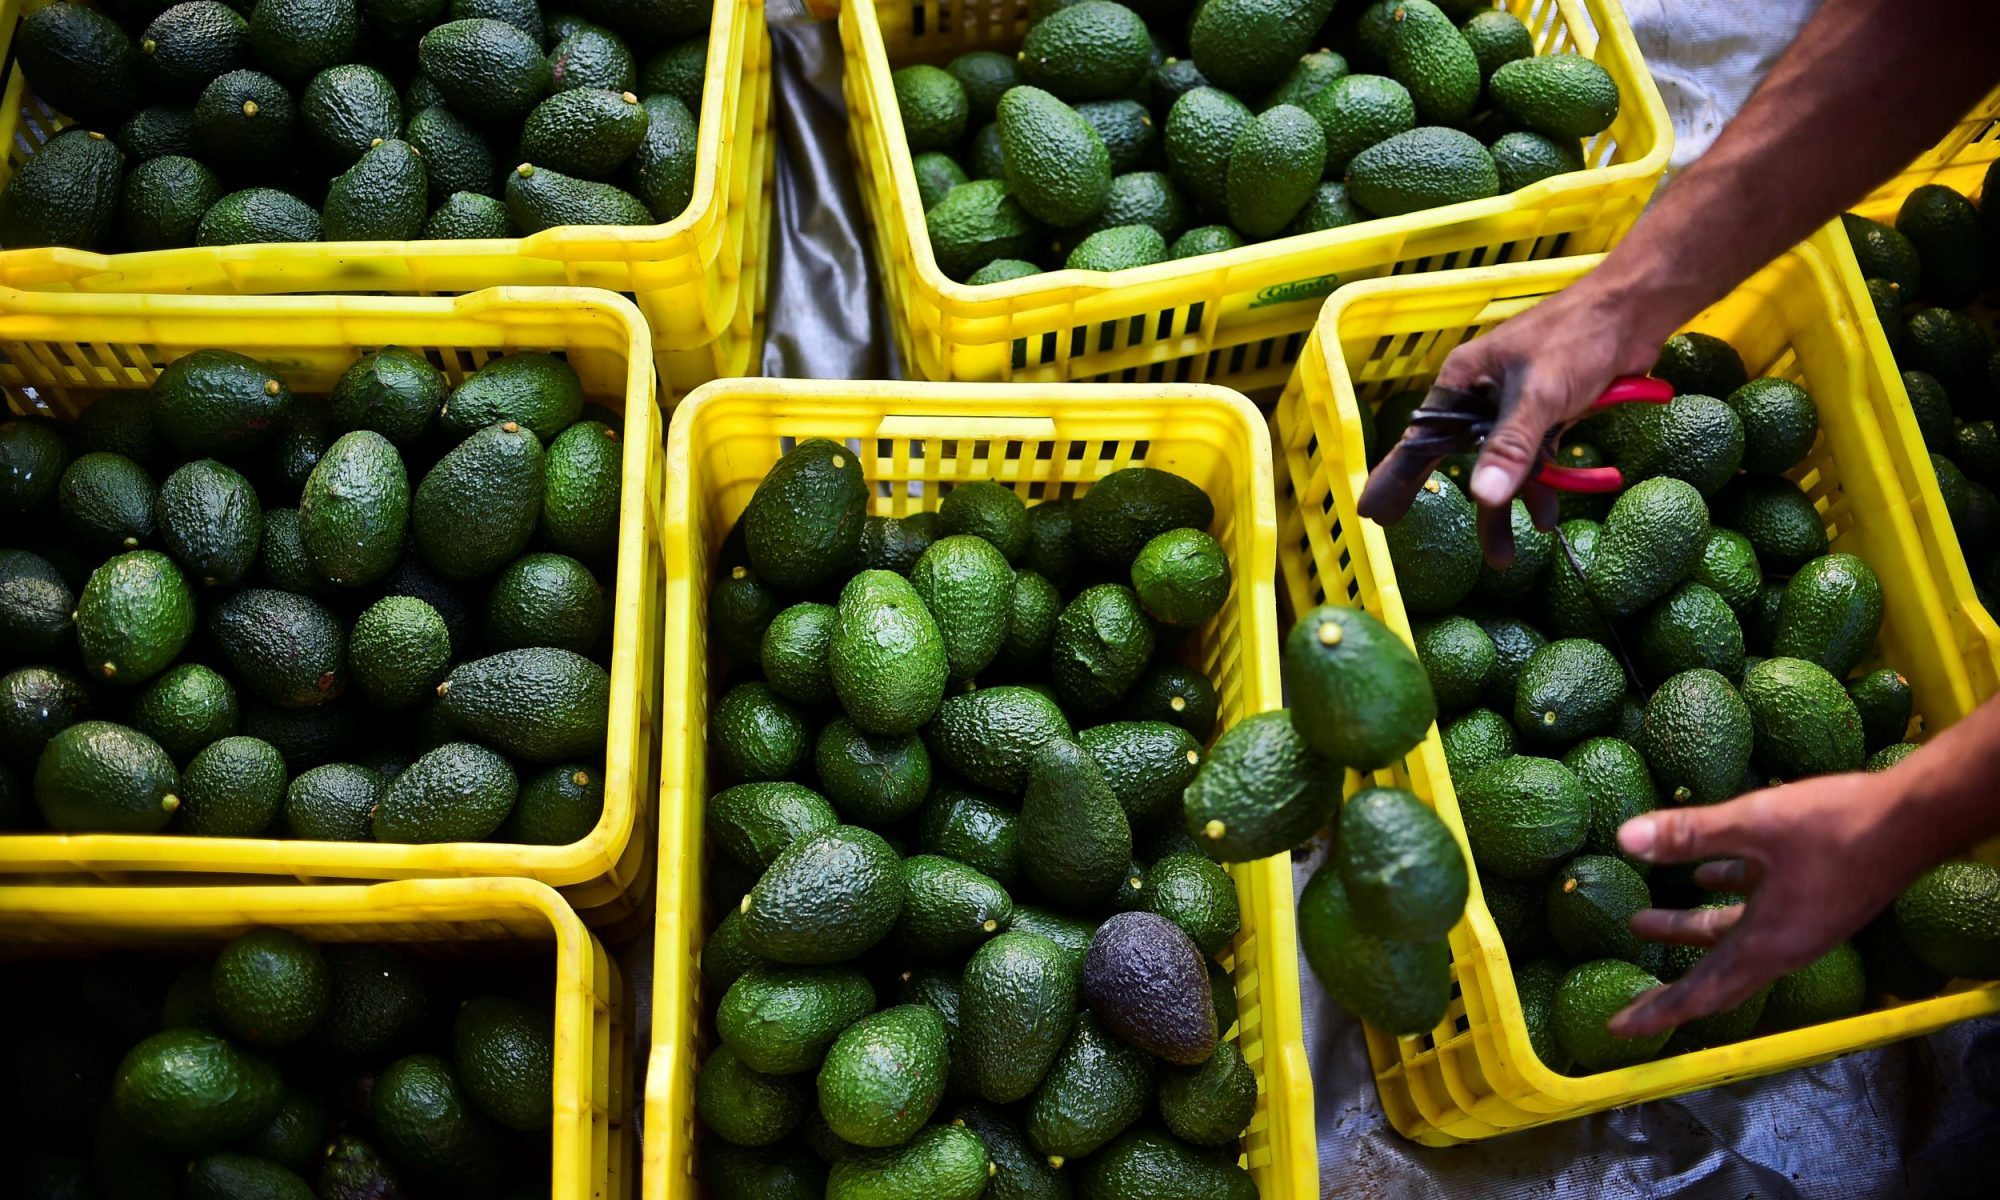 EC: Our Avocado Habit Is Destroying the Planet